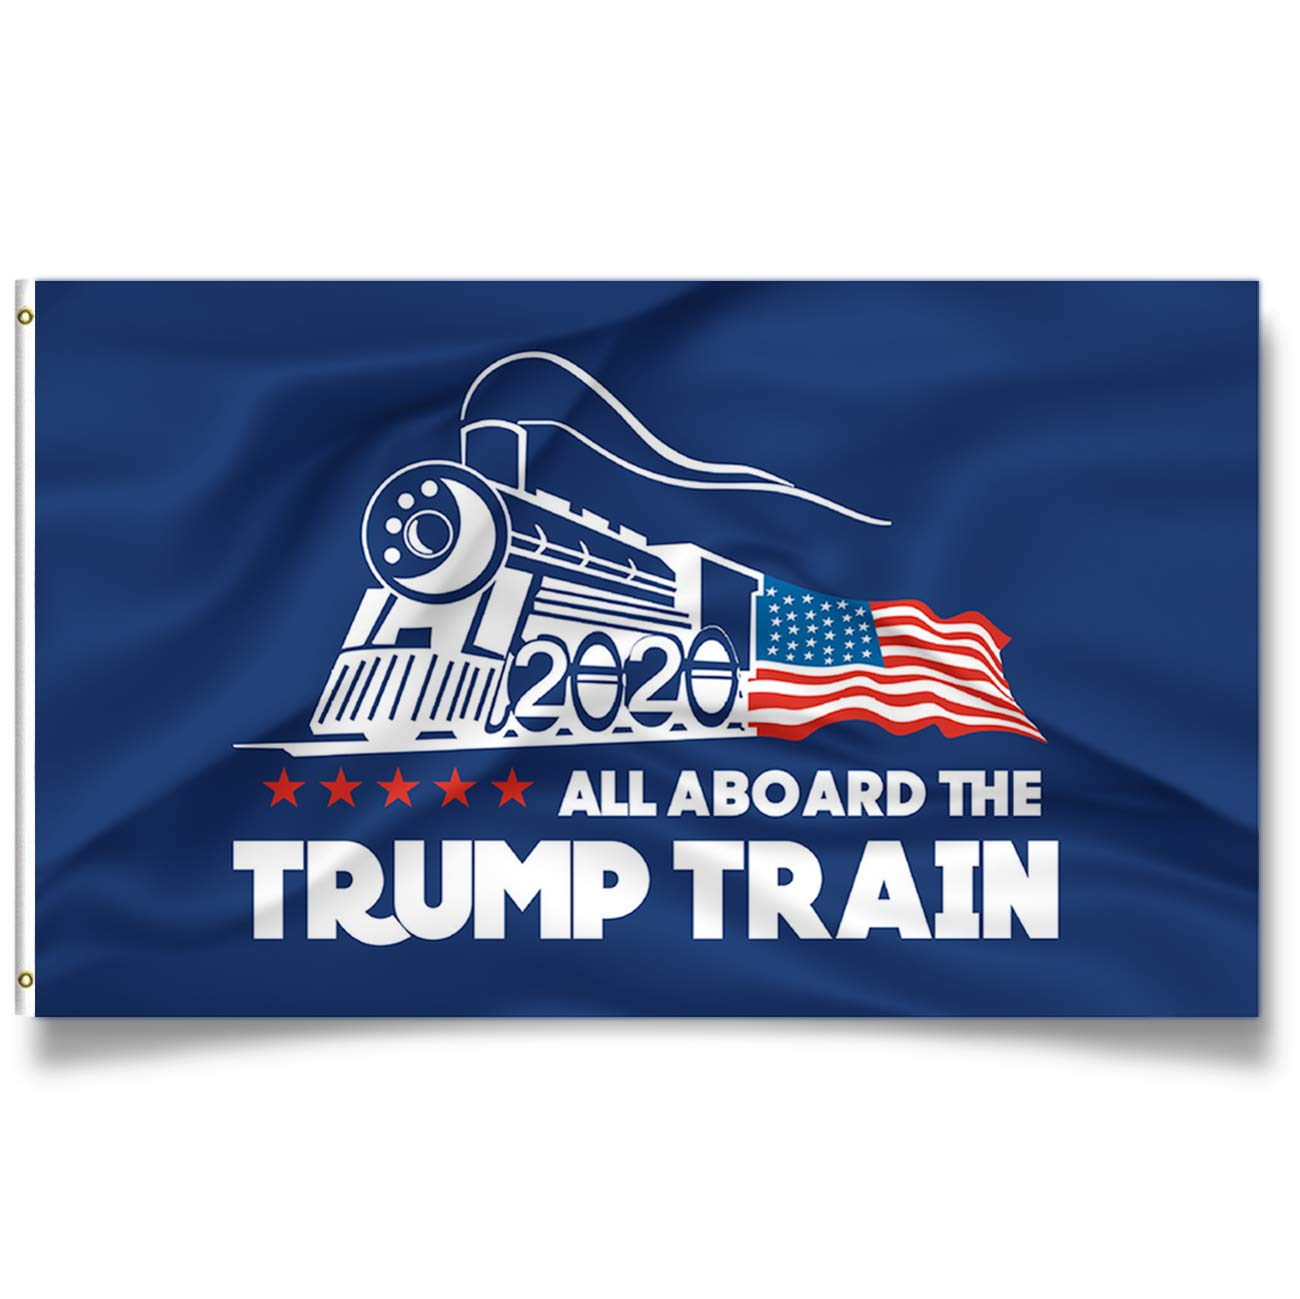 Kaiyuan Dynasty Trump Flag Train Donald Trump Flags Support For President 2020 Banner – All Aboard The Trump Train 3 X 5 Feet With Two Brass Grommets